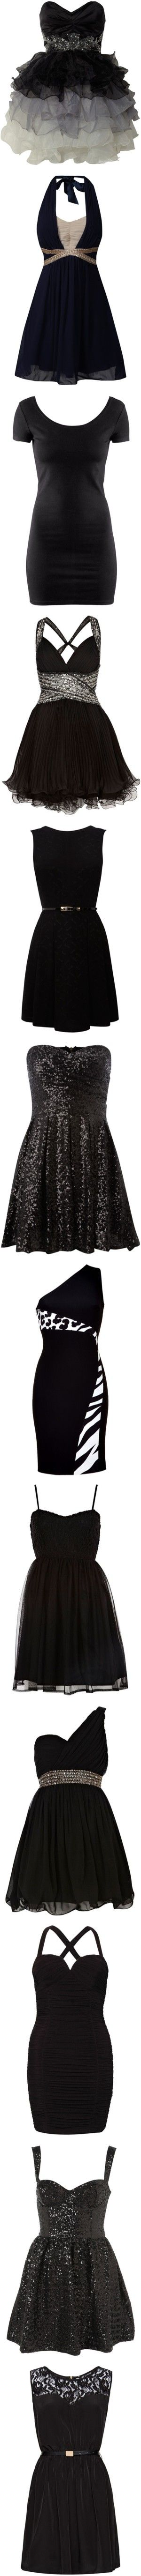 Little Black Dress!<3 There a a few of these that I love!